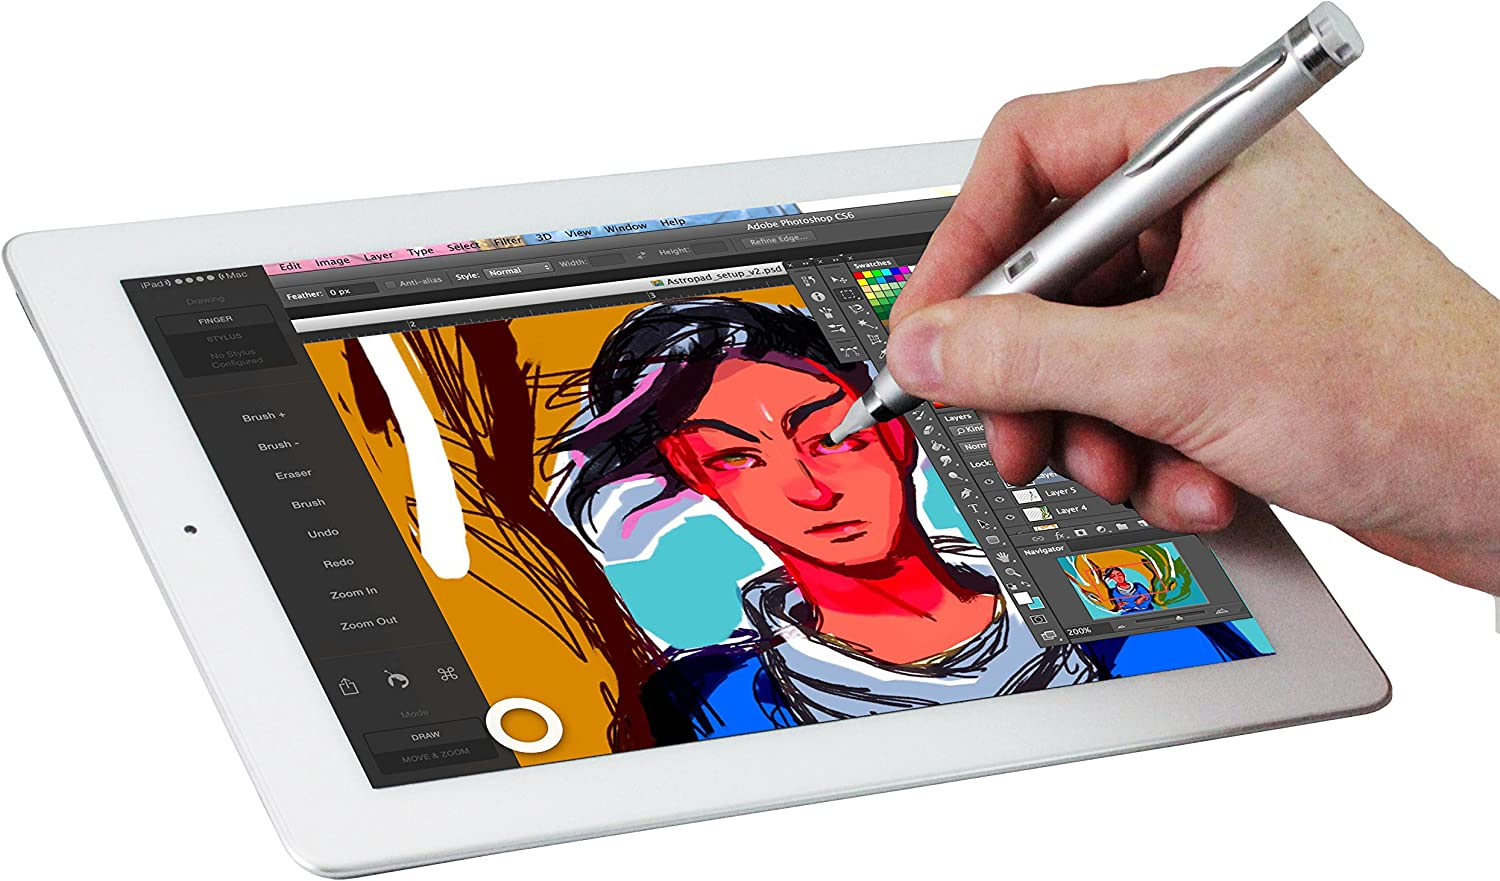 Navitech Silver Fine Point Digital Active Stylus Pen Compatible With HP ENVY 8 Note 5001na HP Pro Slate 8 Tablet HP Pro Tablet 408 G1 HP Pro Slate 8 Tablet HP Pro 10 EE G1 Tablet